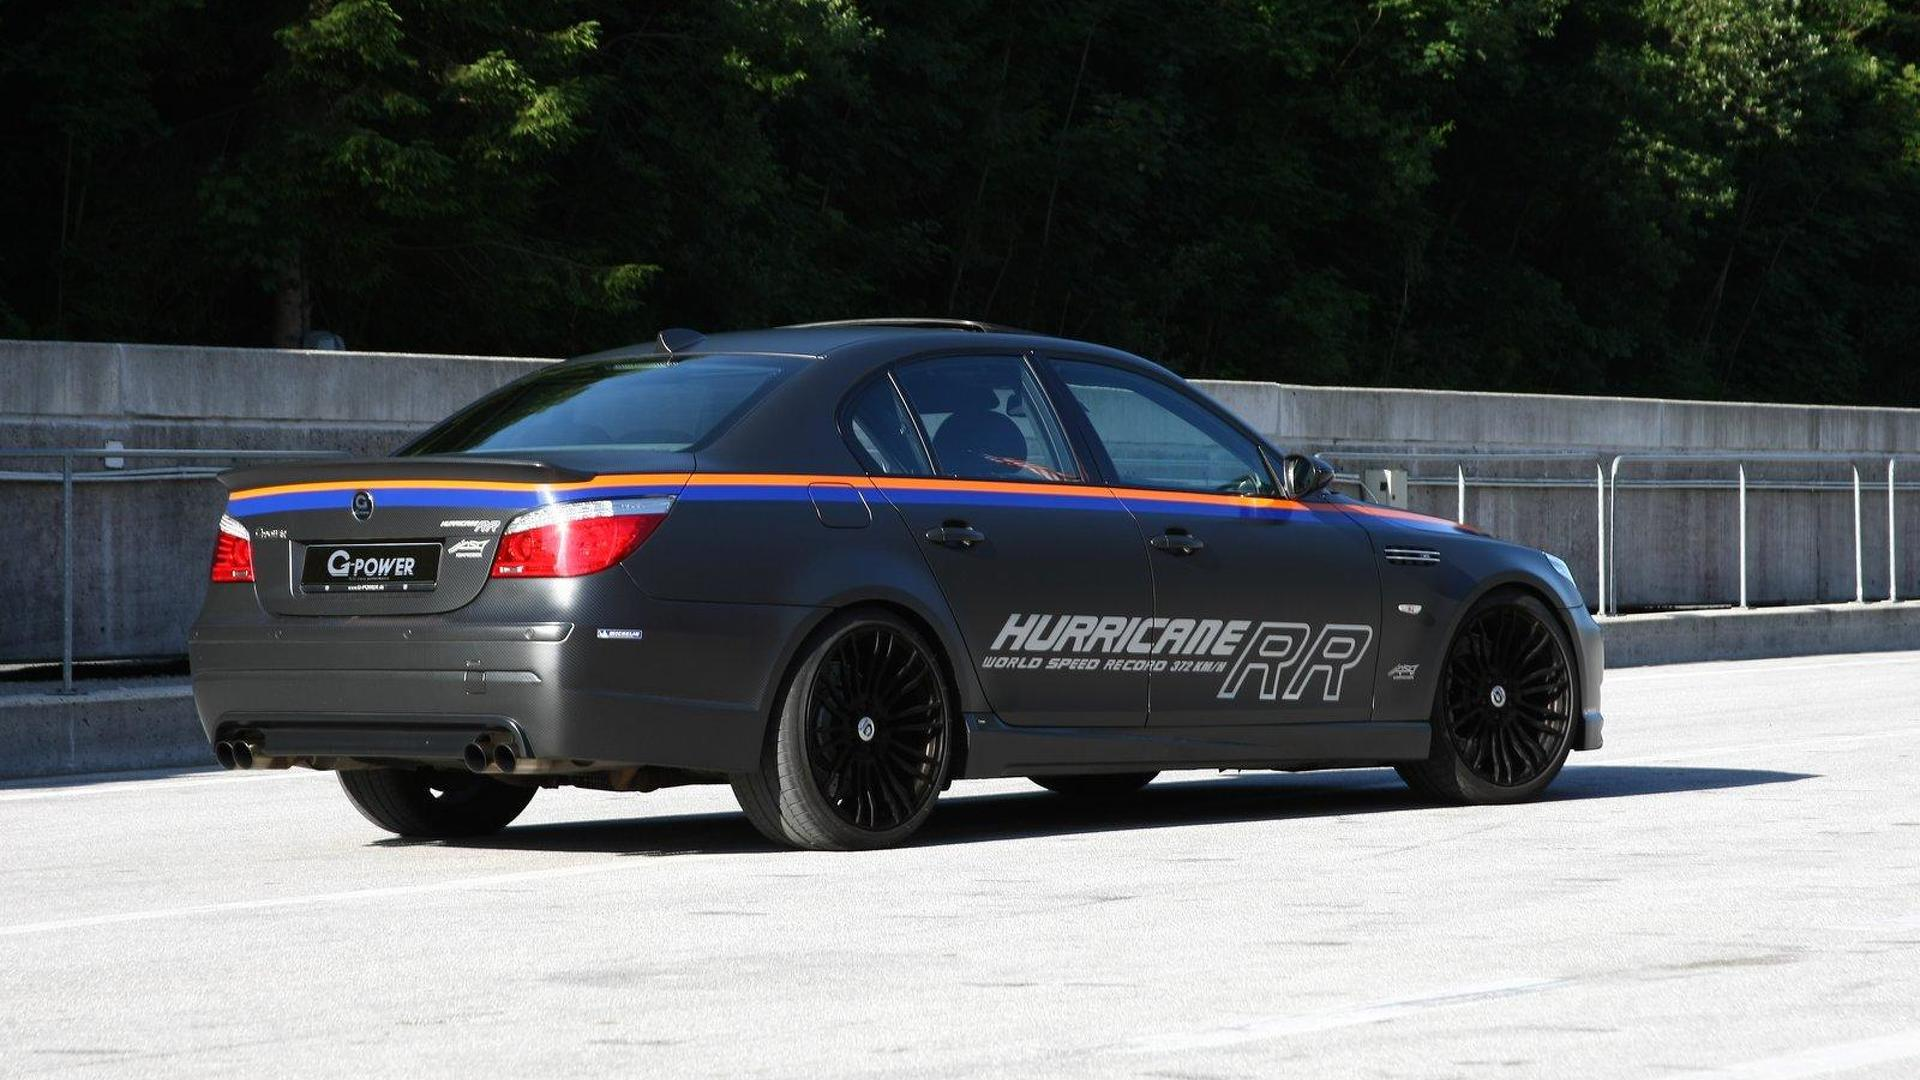 G Power M5 Hurricane Rr Becomes World S Fastest Sedan At 372 Km H